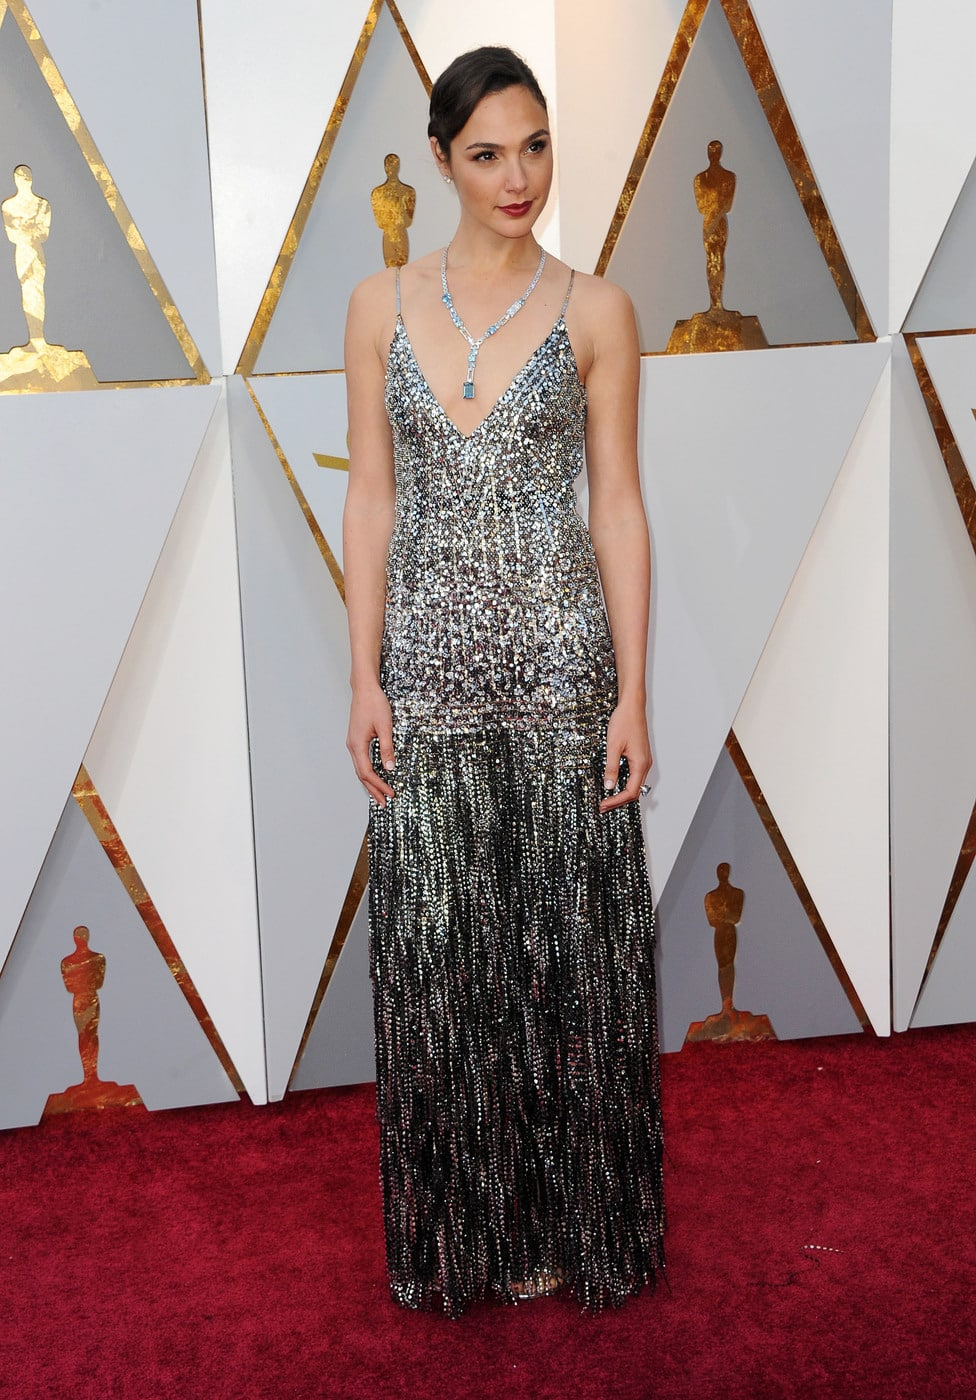 Gal Gadot in Givenchy at the 2018 Oscars